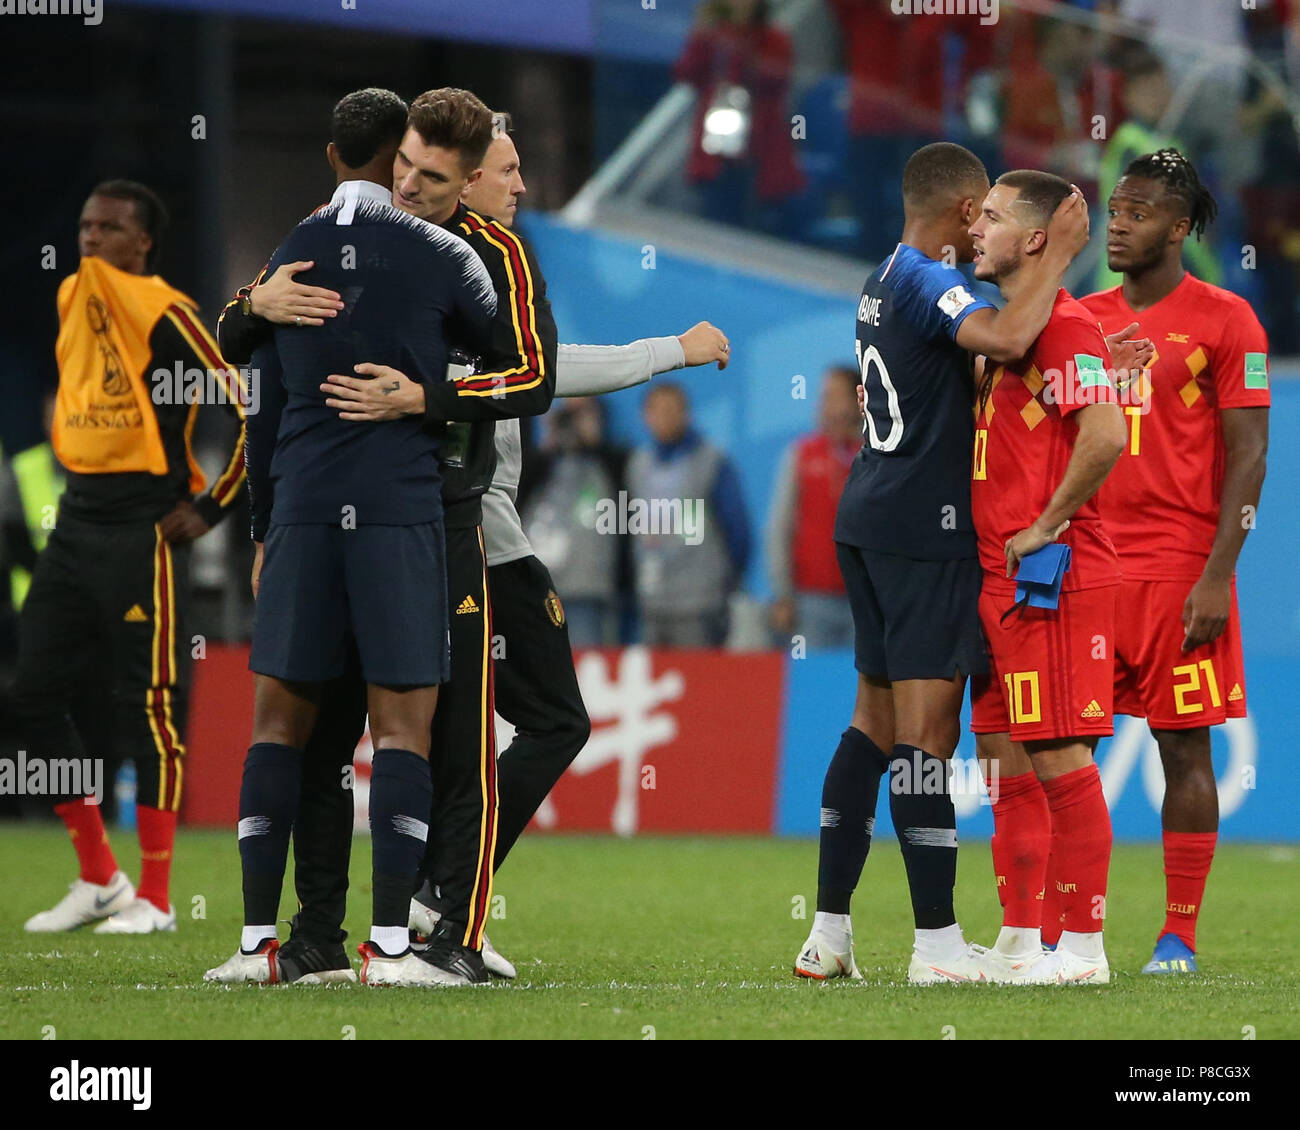 ¿Cuánto mide Eden Hazard? - Altura y peso - Real height and weight Saint-petersburg-russia-10th-july-2018-kylian-mbappe-3rd-r-of-france-tries-to-comfort-eden-hazard-2nd-r-of-belgium-after-the-2018-fifa-world-cup-semi-final-match-between-france-and-belgium-in-saint-petersburg-russia-july-10-2018-france-won-1-0-and-advanced-to-the-final-credit-li-mingxinhuaalamy-live-news-P8CG3X